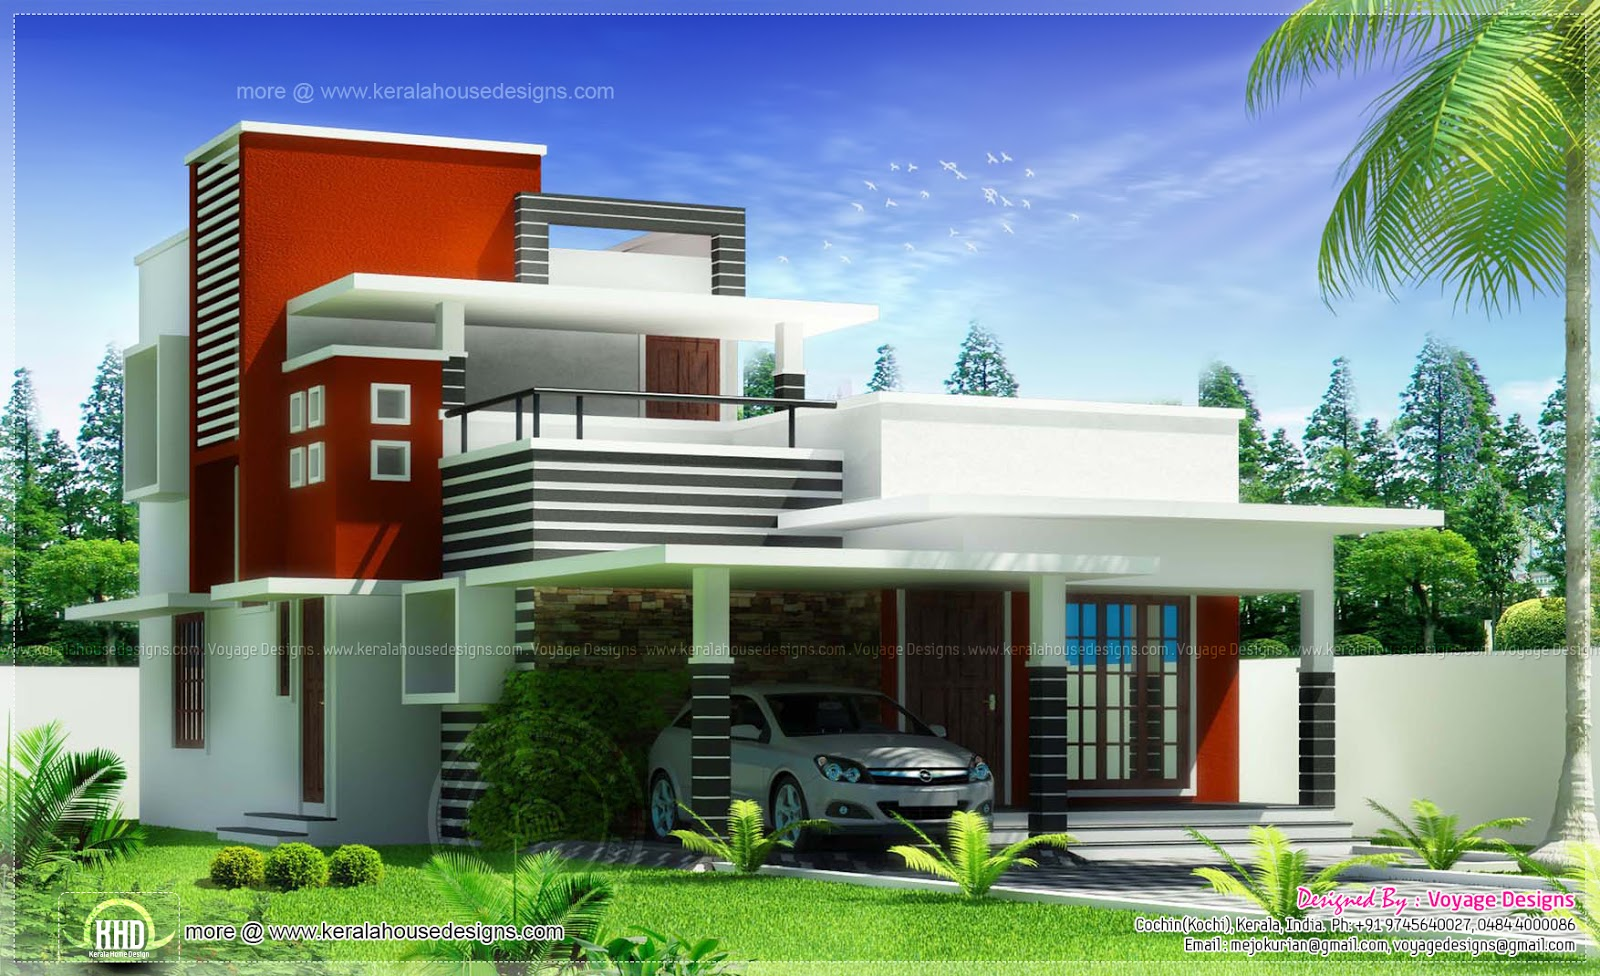 3 bed room contemporary style house kerala home design for Kerala houses designs